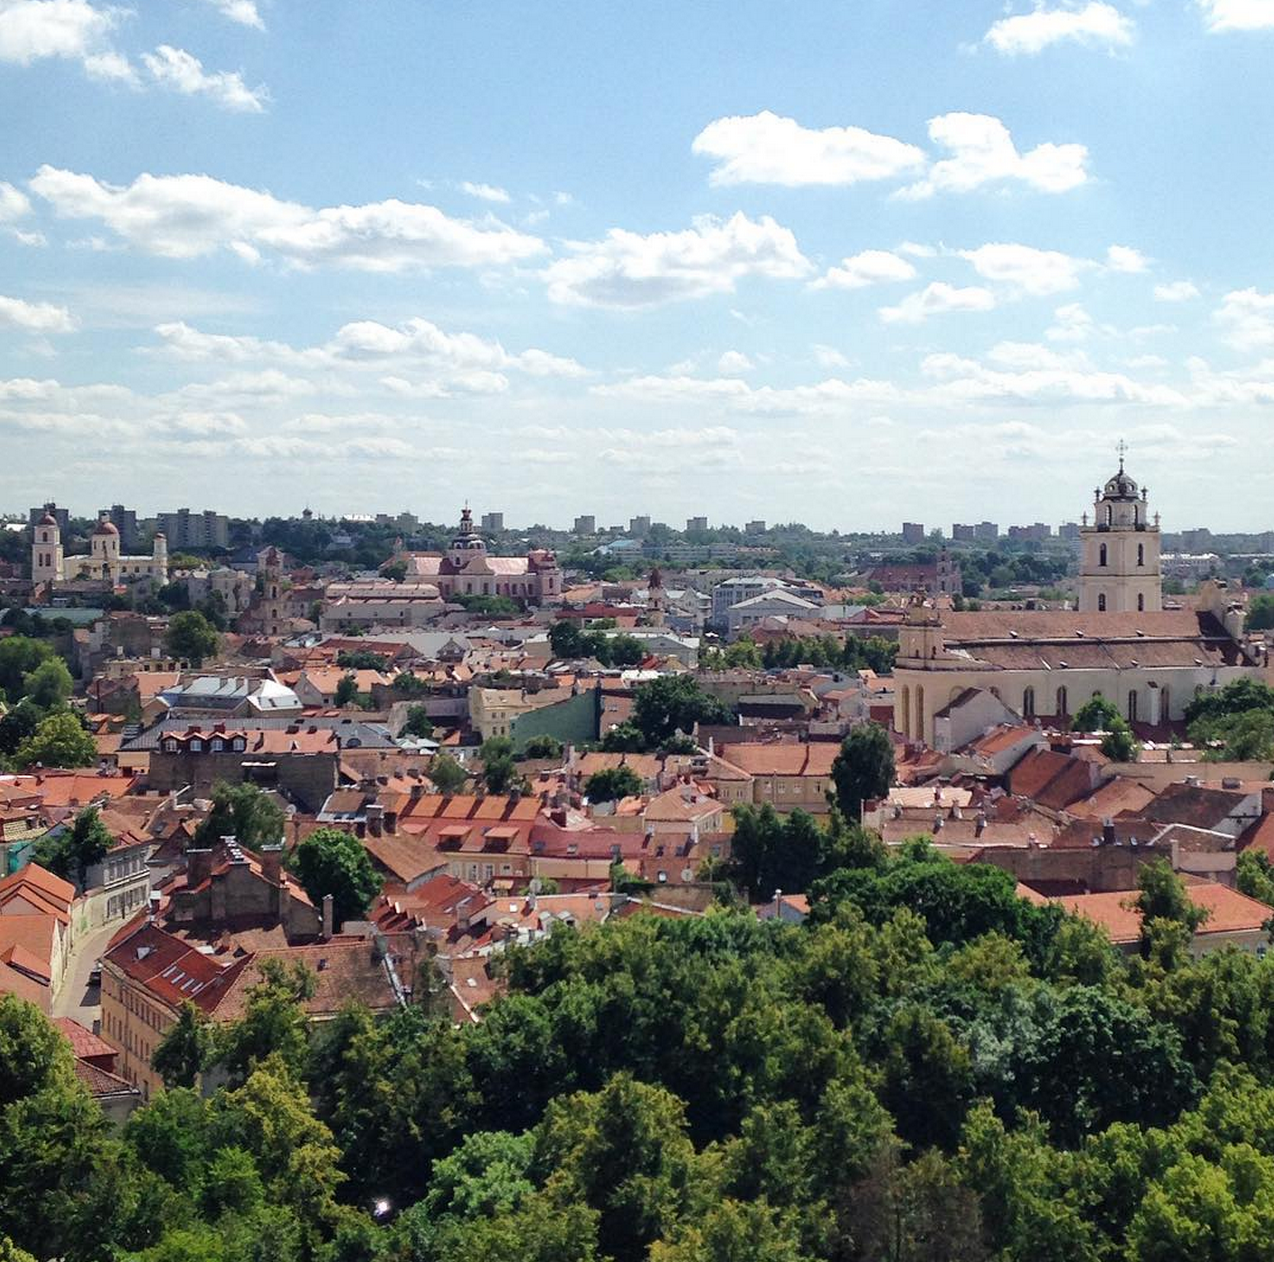 Overlooking the Old Town, Vilnius, Lithuania.